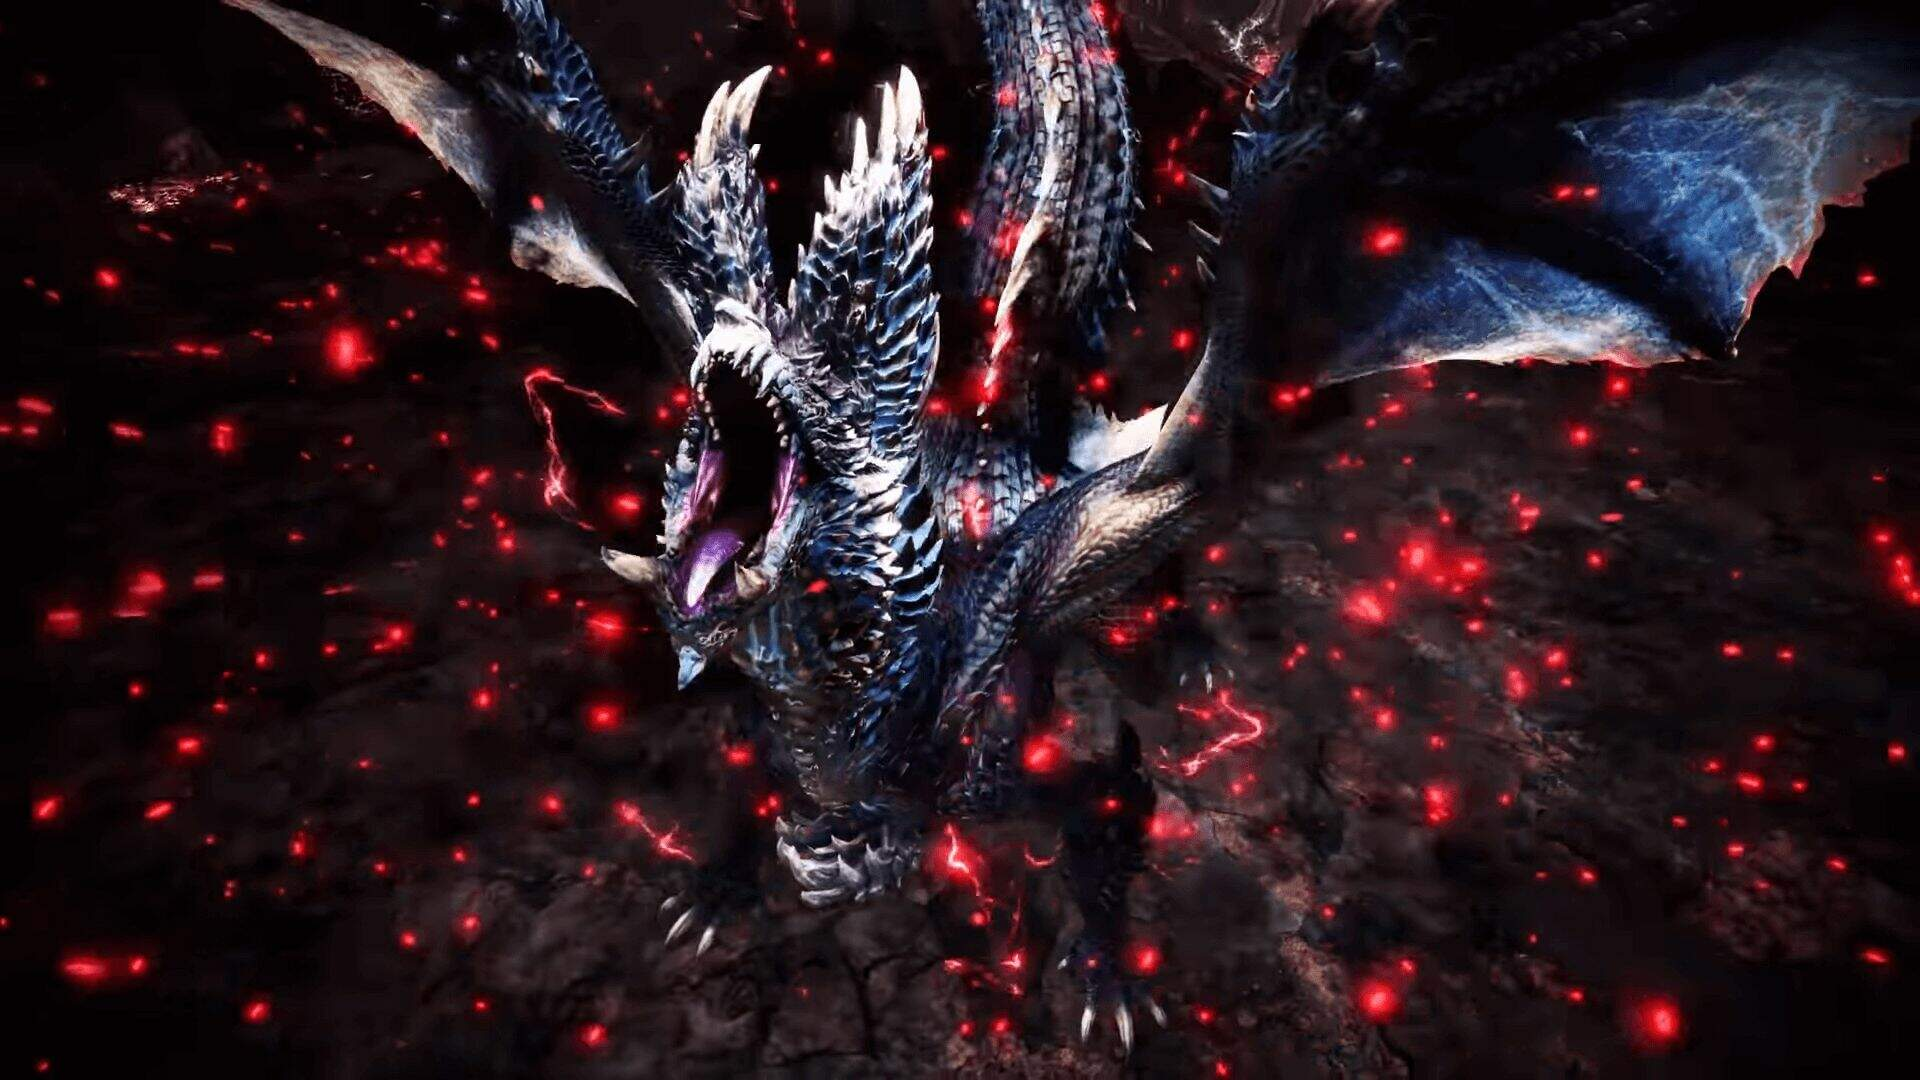 Monster Hunter World's Alatreon Update Launches July 9, New Developer Diary Coming This Week